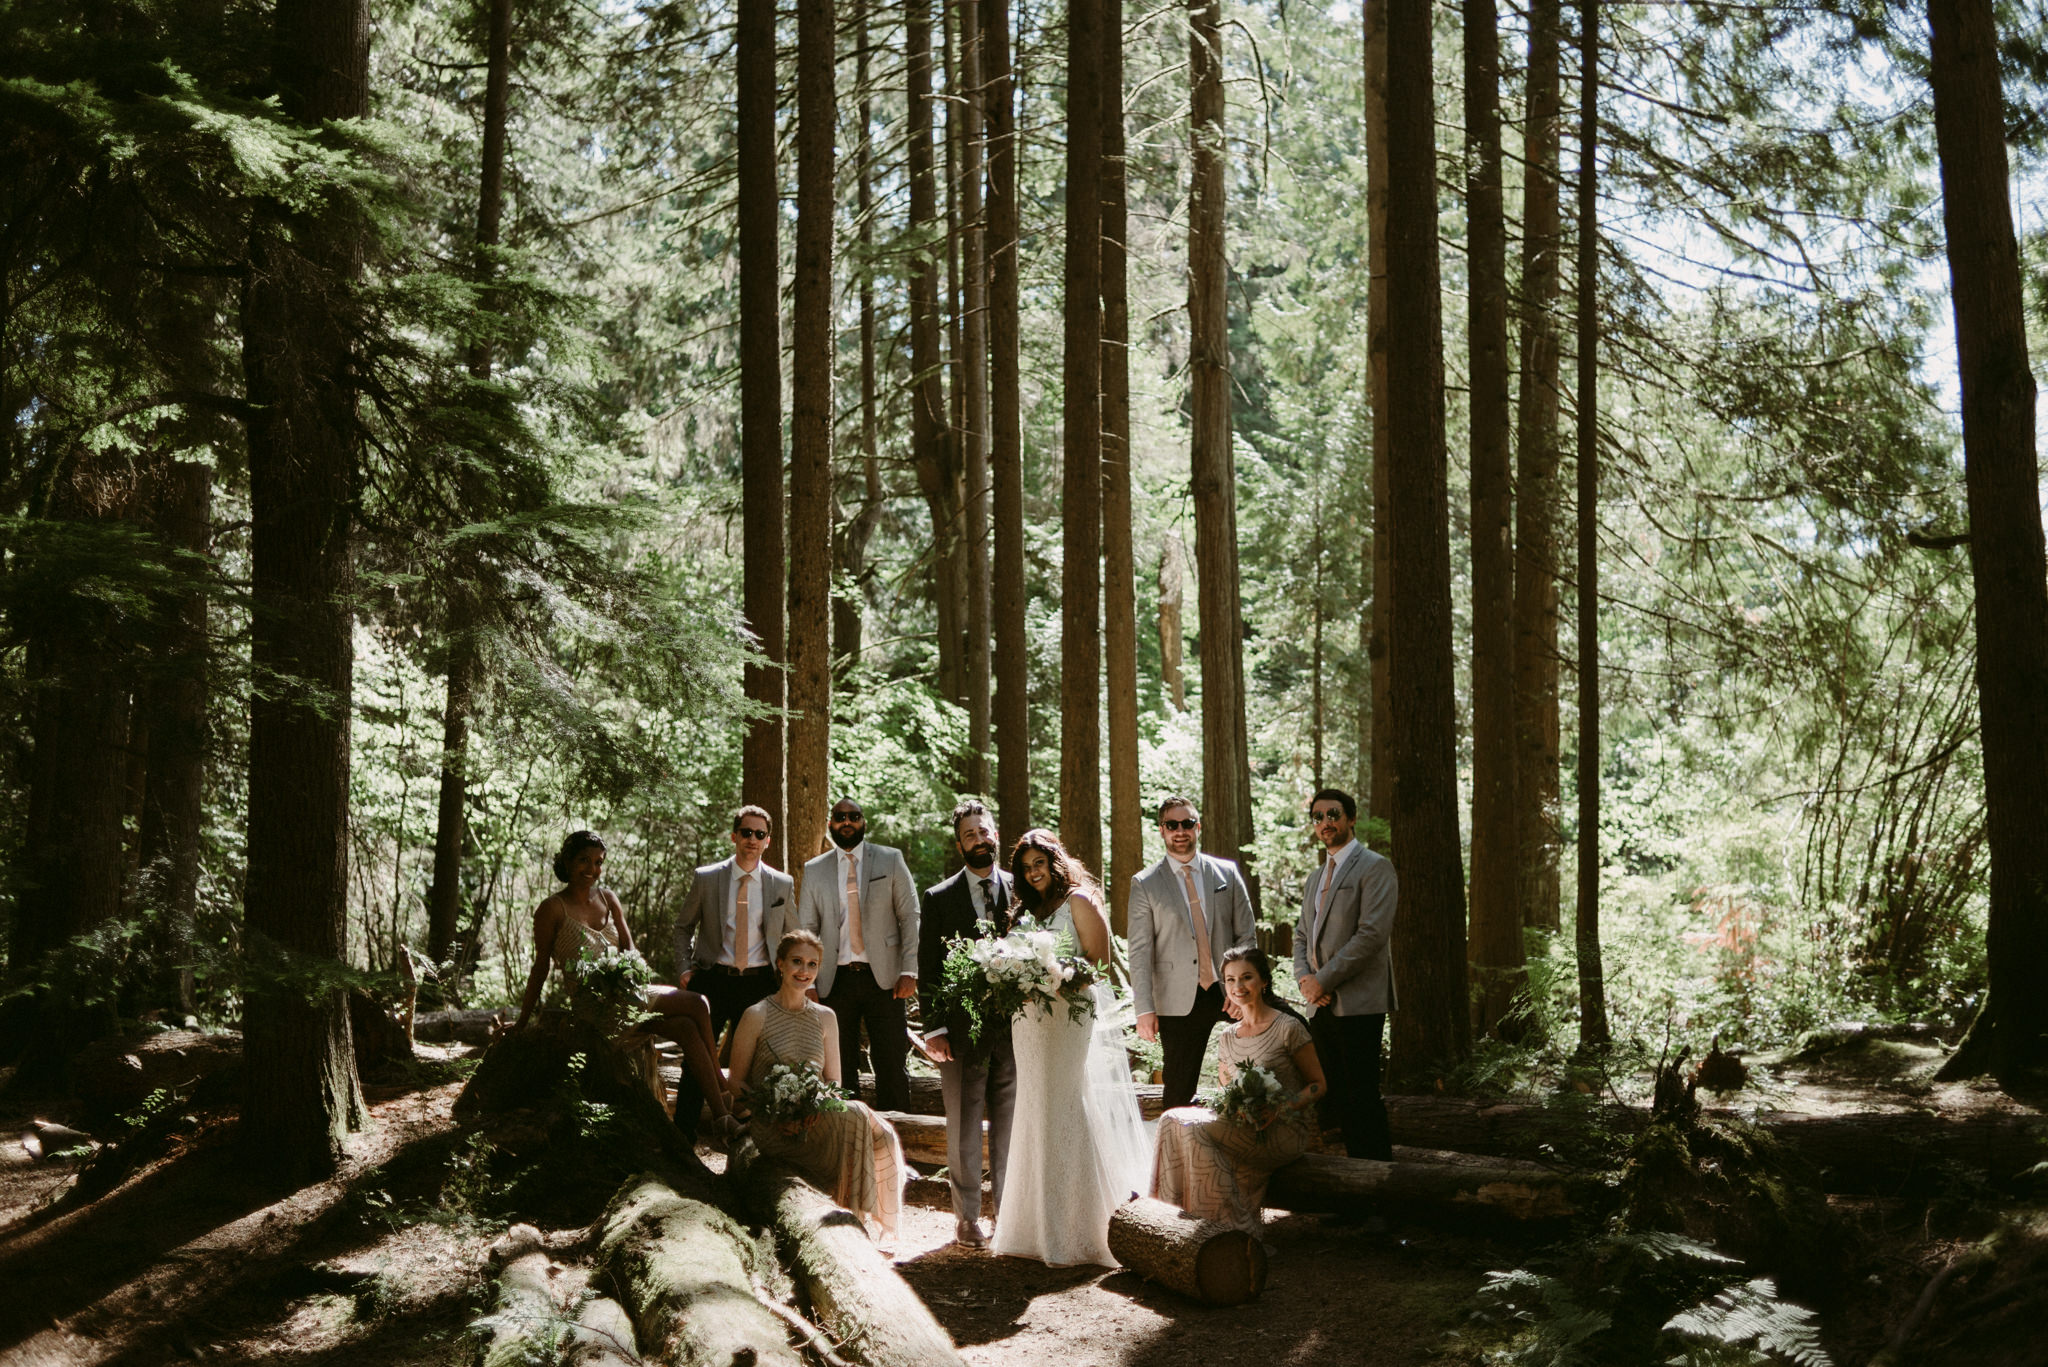 wedding party portrait in forest in vancouver